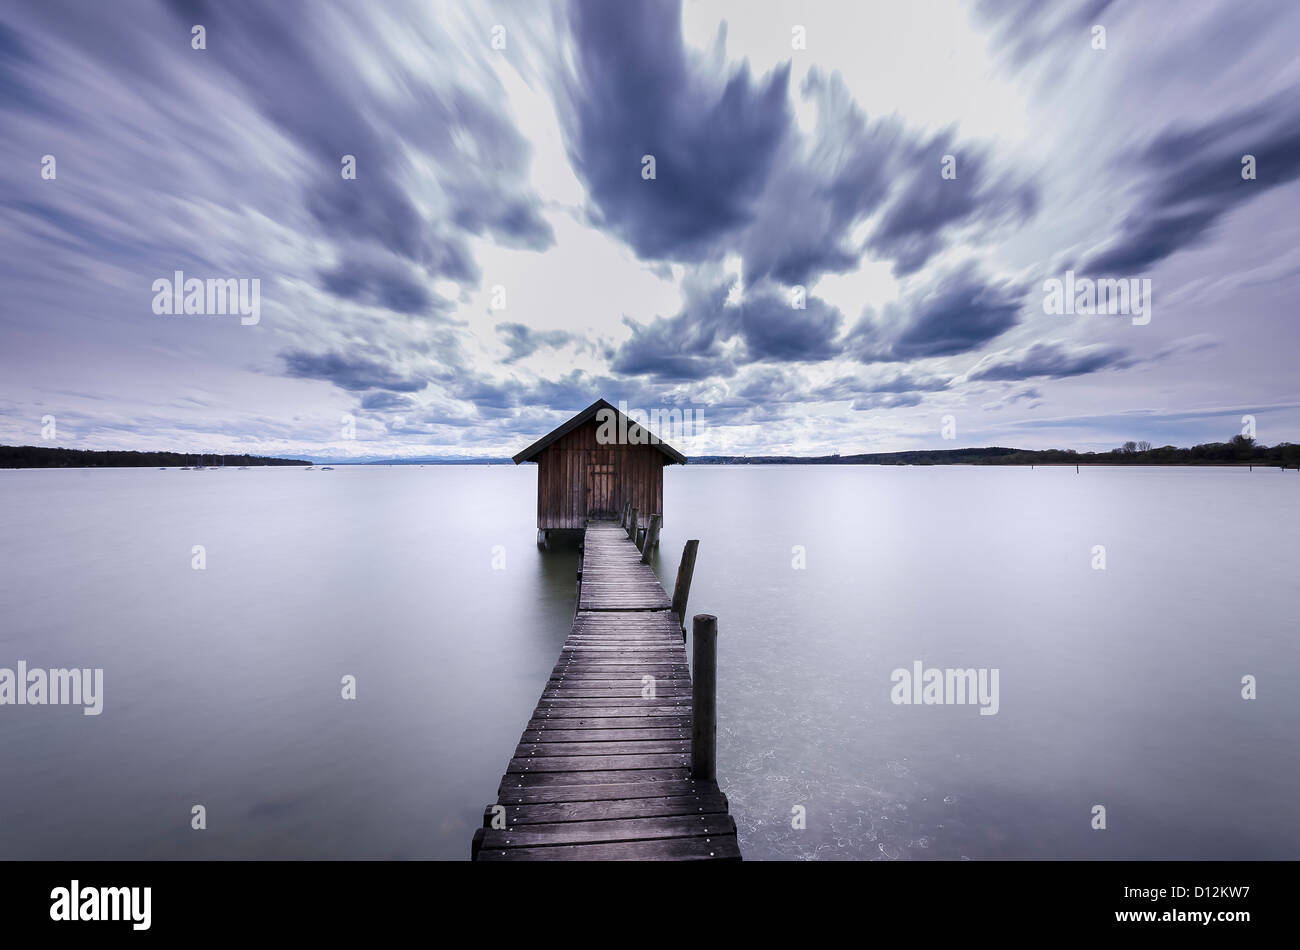 Germany, Bavaria, View of boathouse with pier at Ammersee Lake - Stock Image